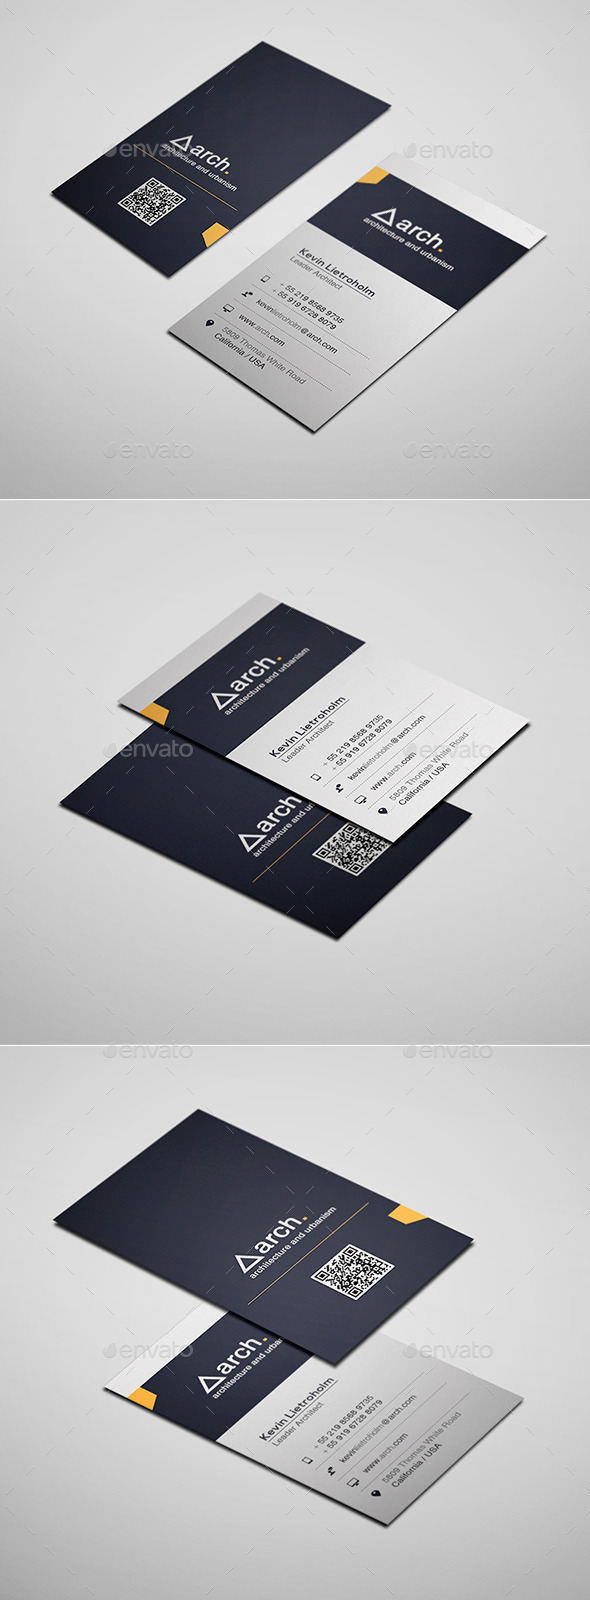 GraphicRiver Business Card Vol 01 11382019